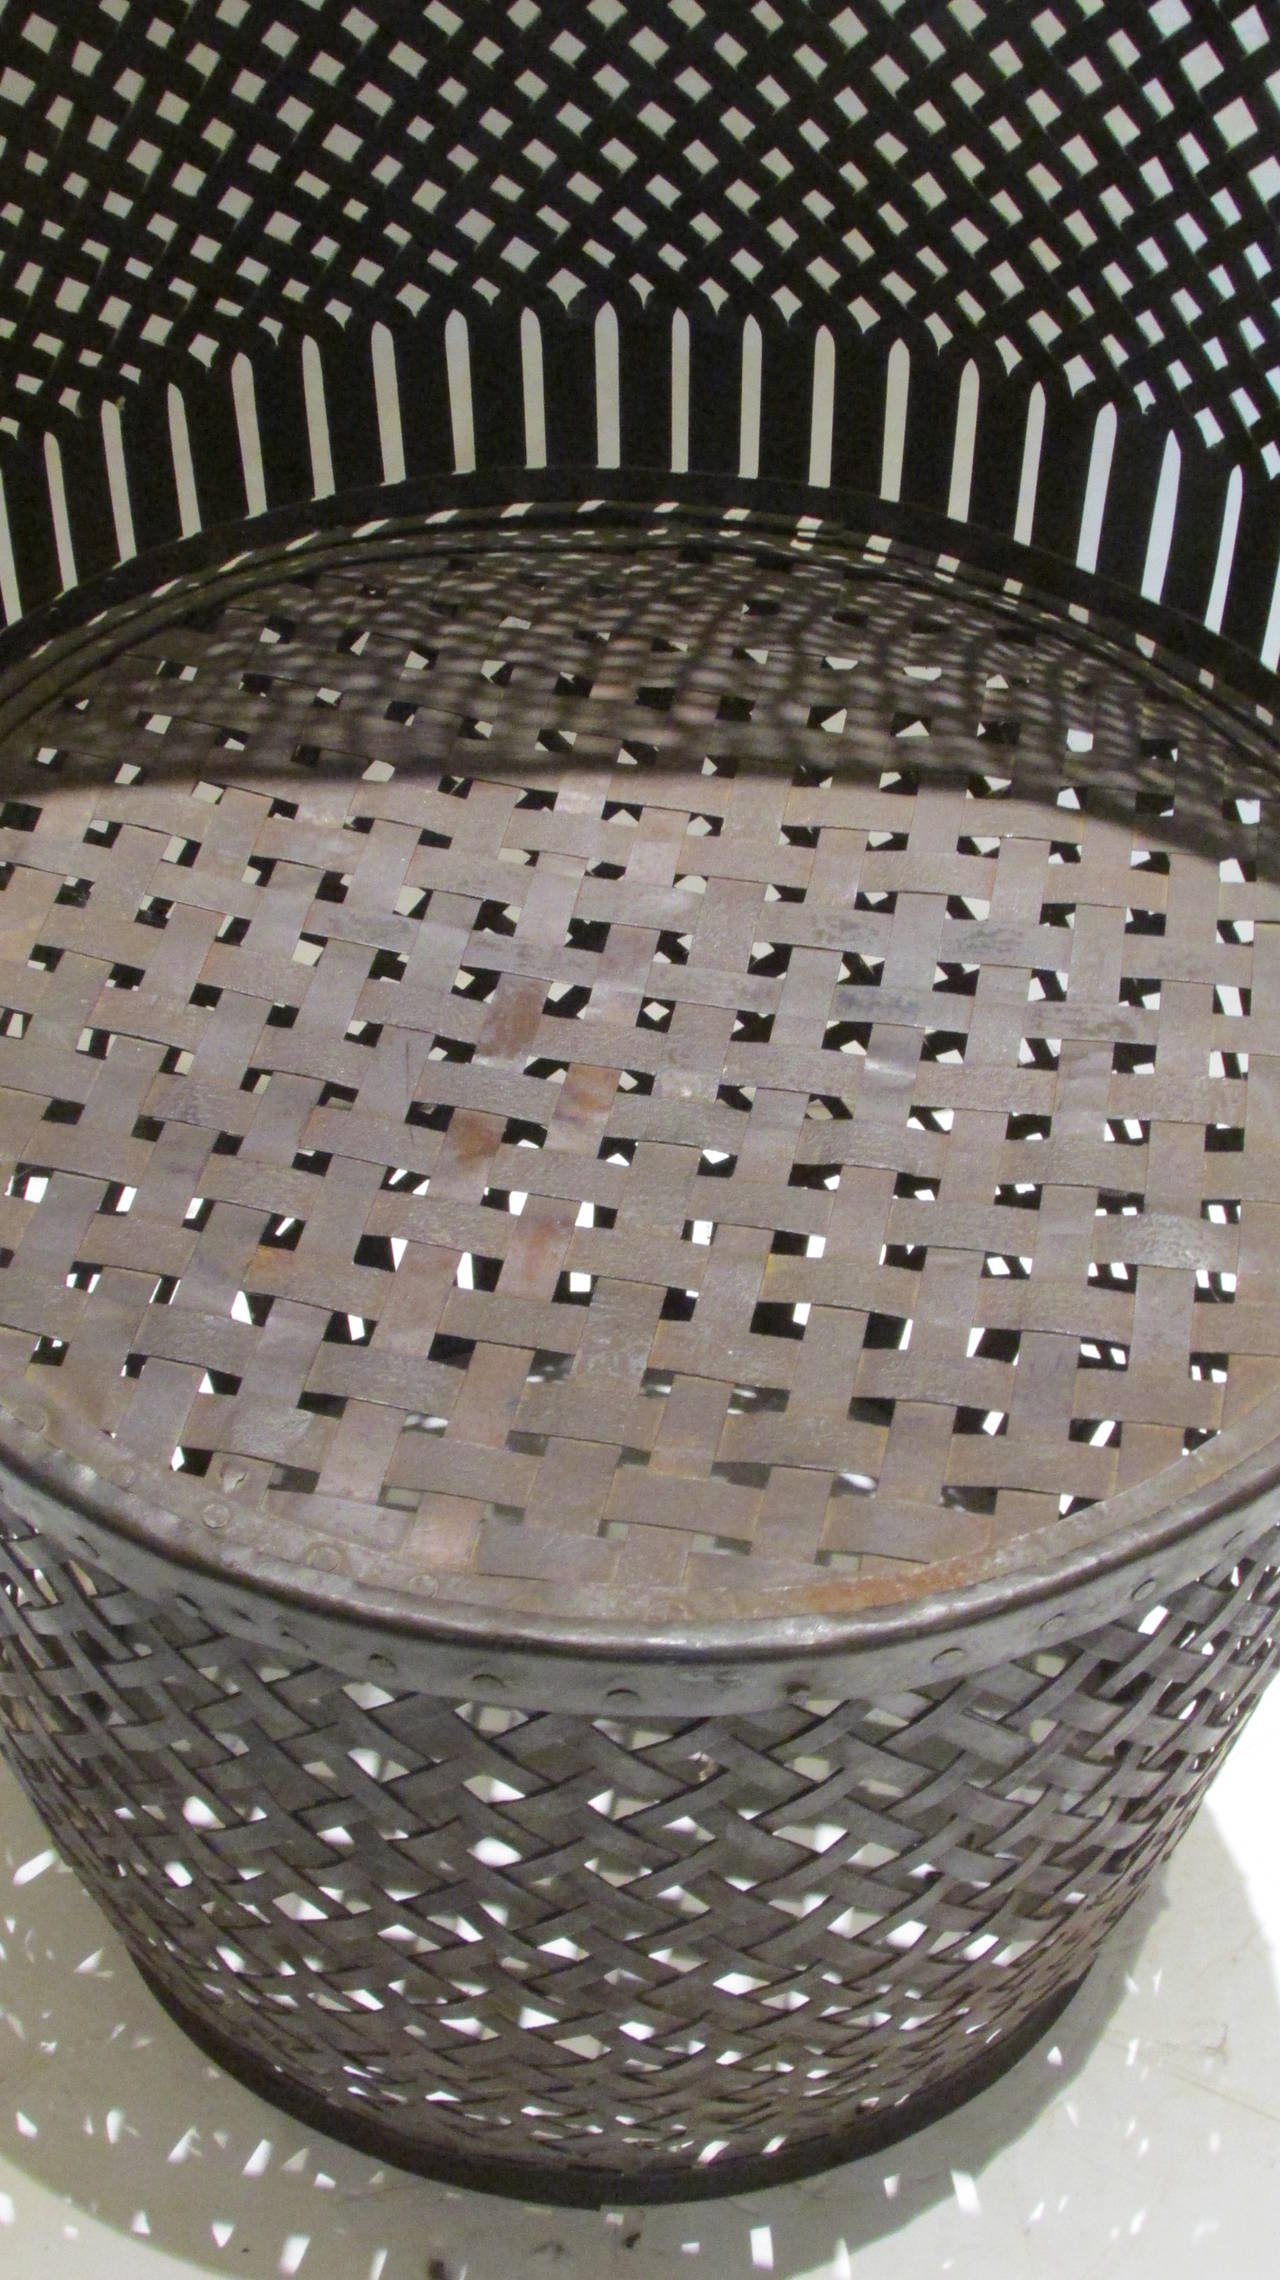 Riveted Woven Metal Drum Barrel Chair At 1stdibs